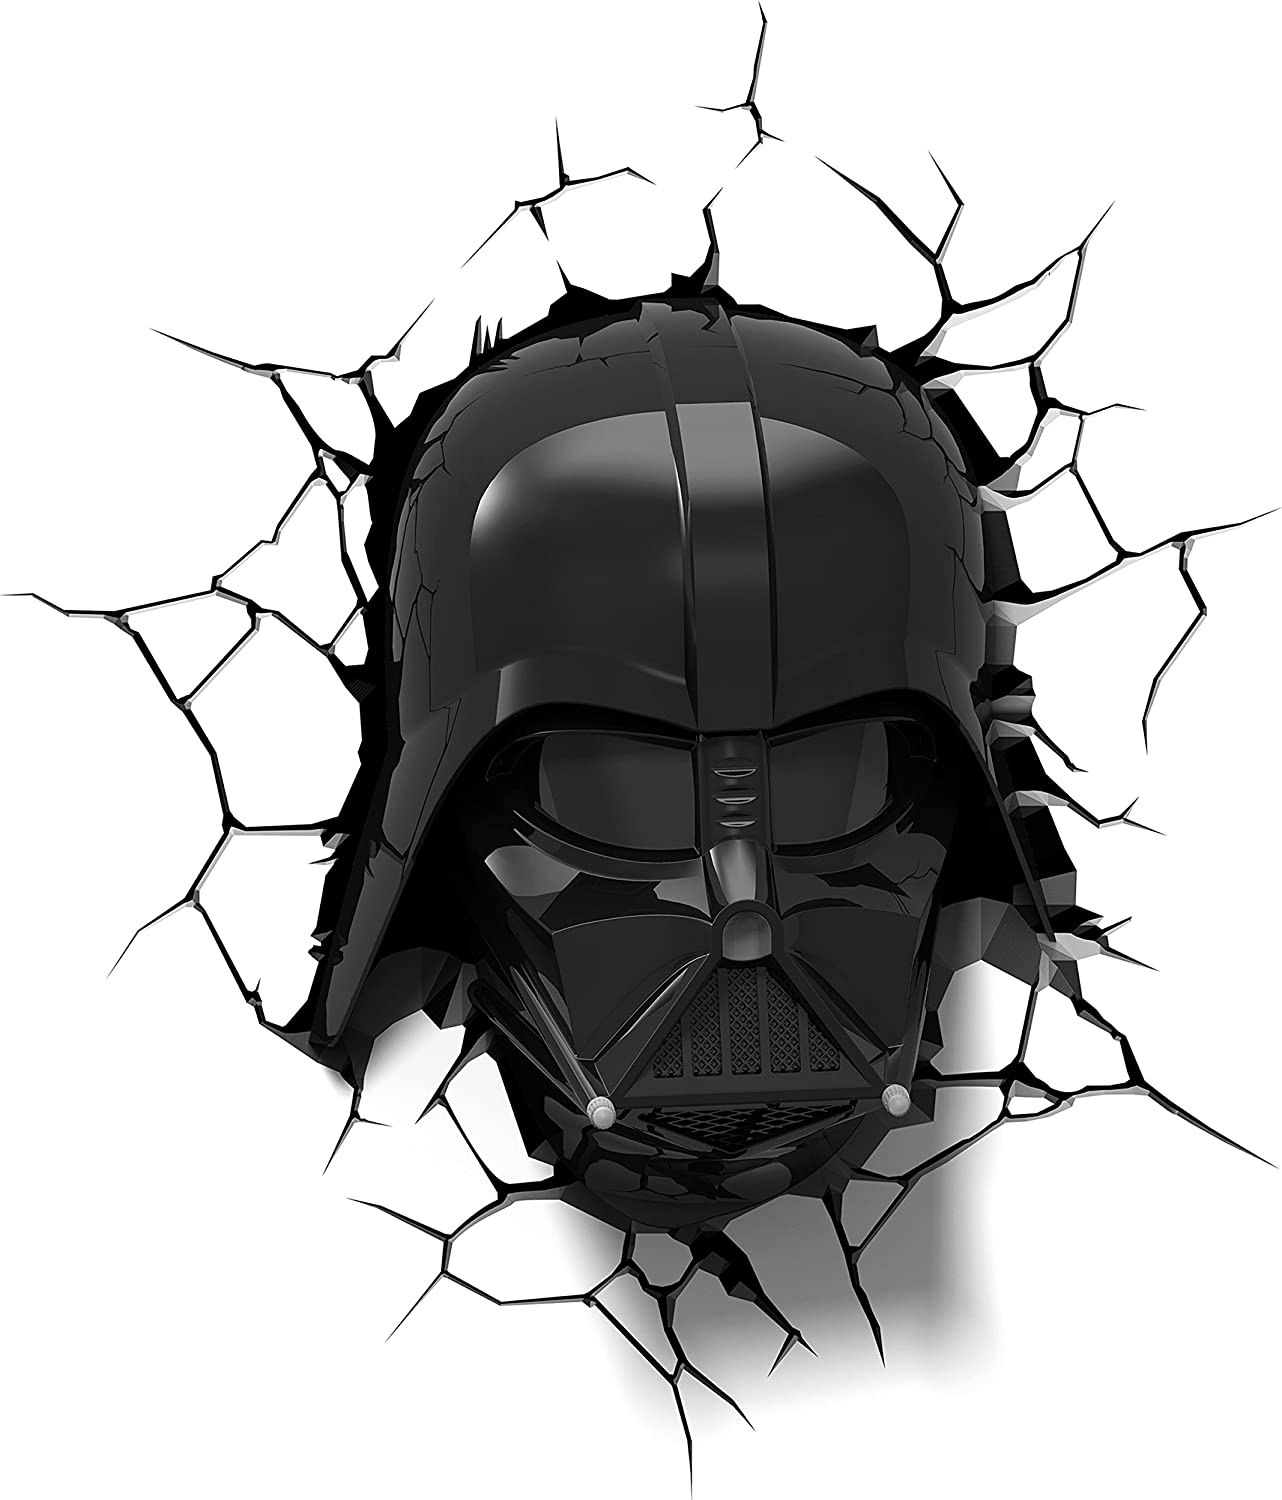 3dlightfx Star Wars Darth Vader Helmet 3d Deco Light Toys Games